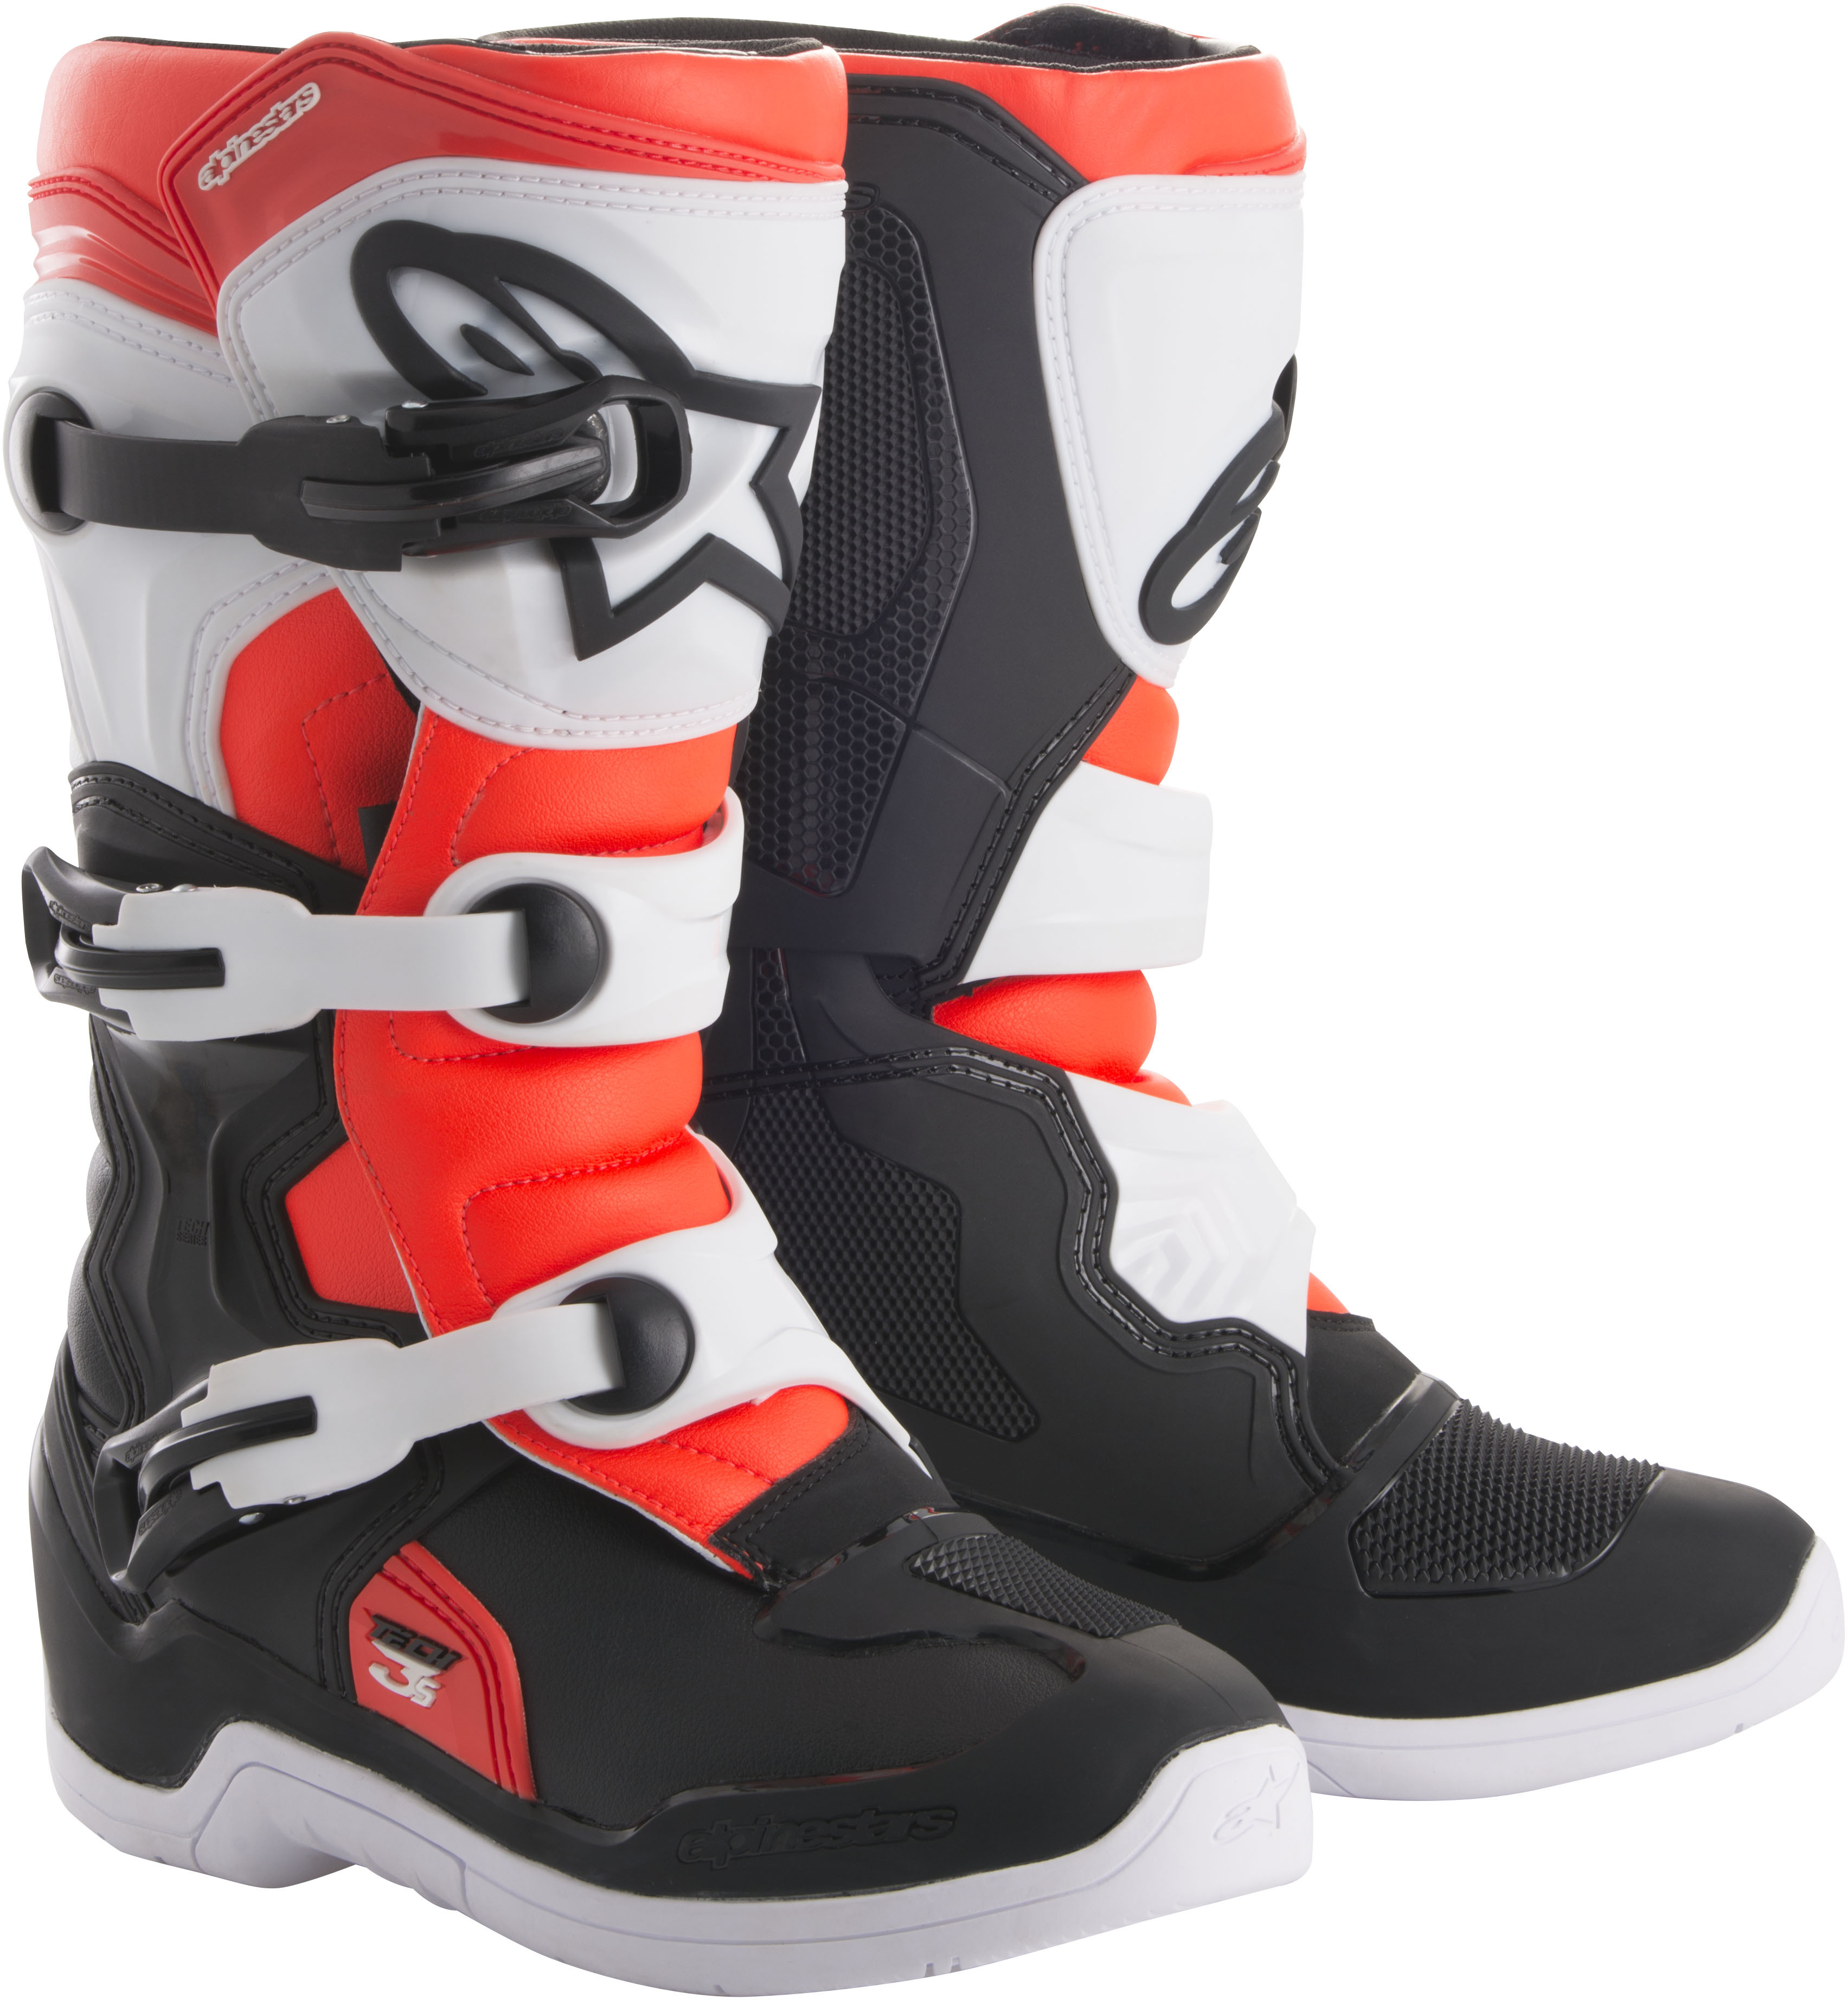 ALPINESTARS 2014018-1231-5 TECH 3S BOOTS BLACK/WHITE/RED SZ 5